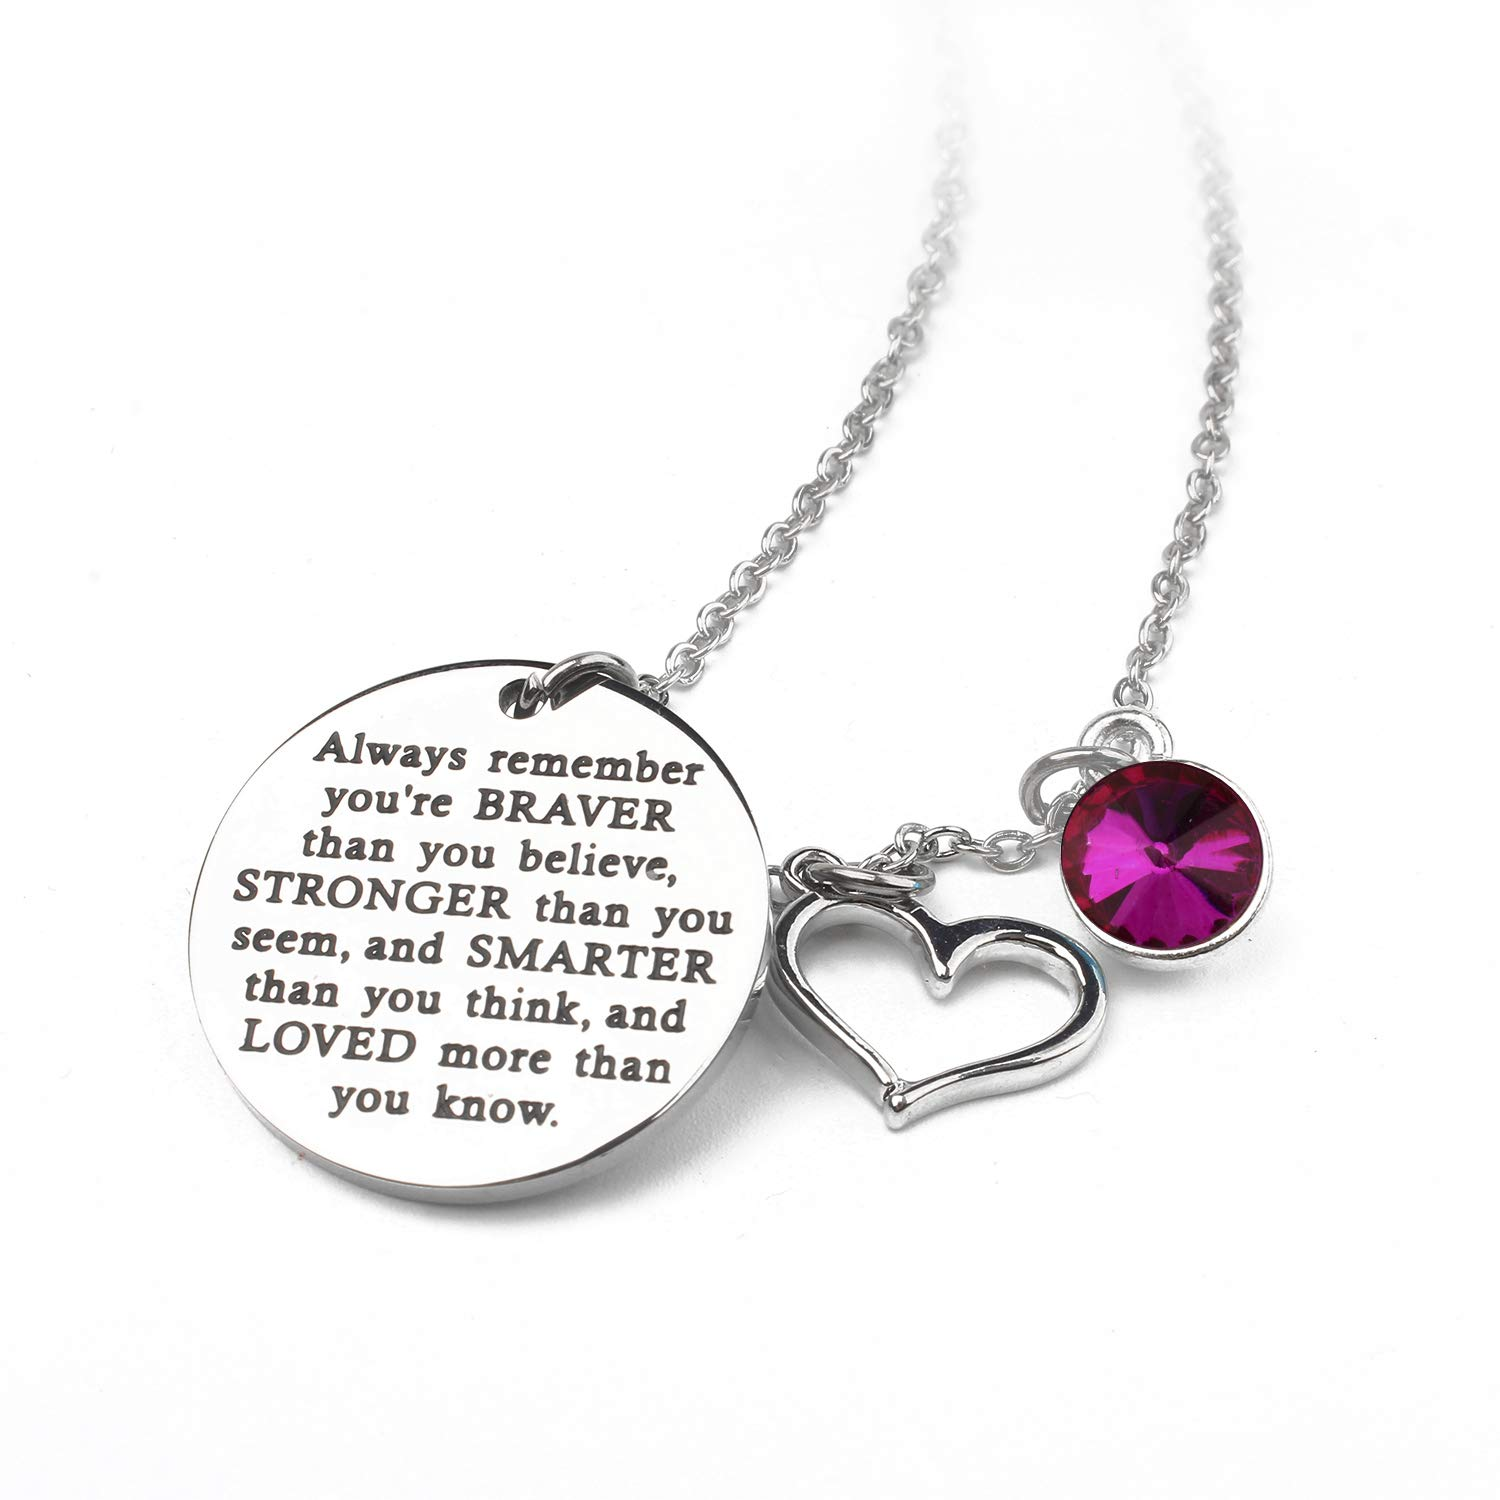 Zaoming You are Braver Than You Believe Inspirational Necklace Birthstone Graduation Gift Best Friend Encouragement Gifts Birthday Gift